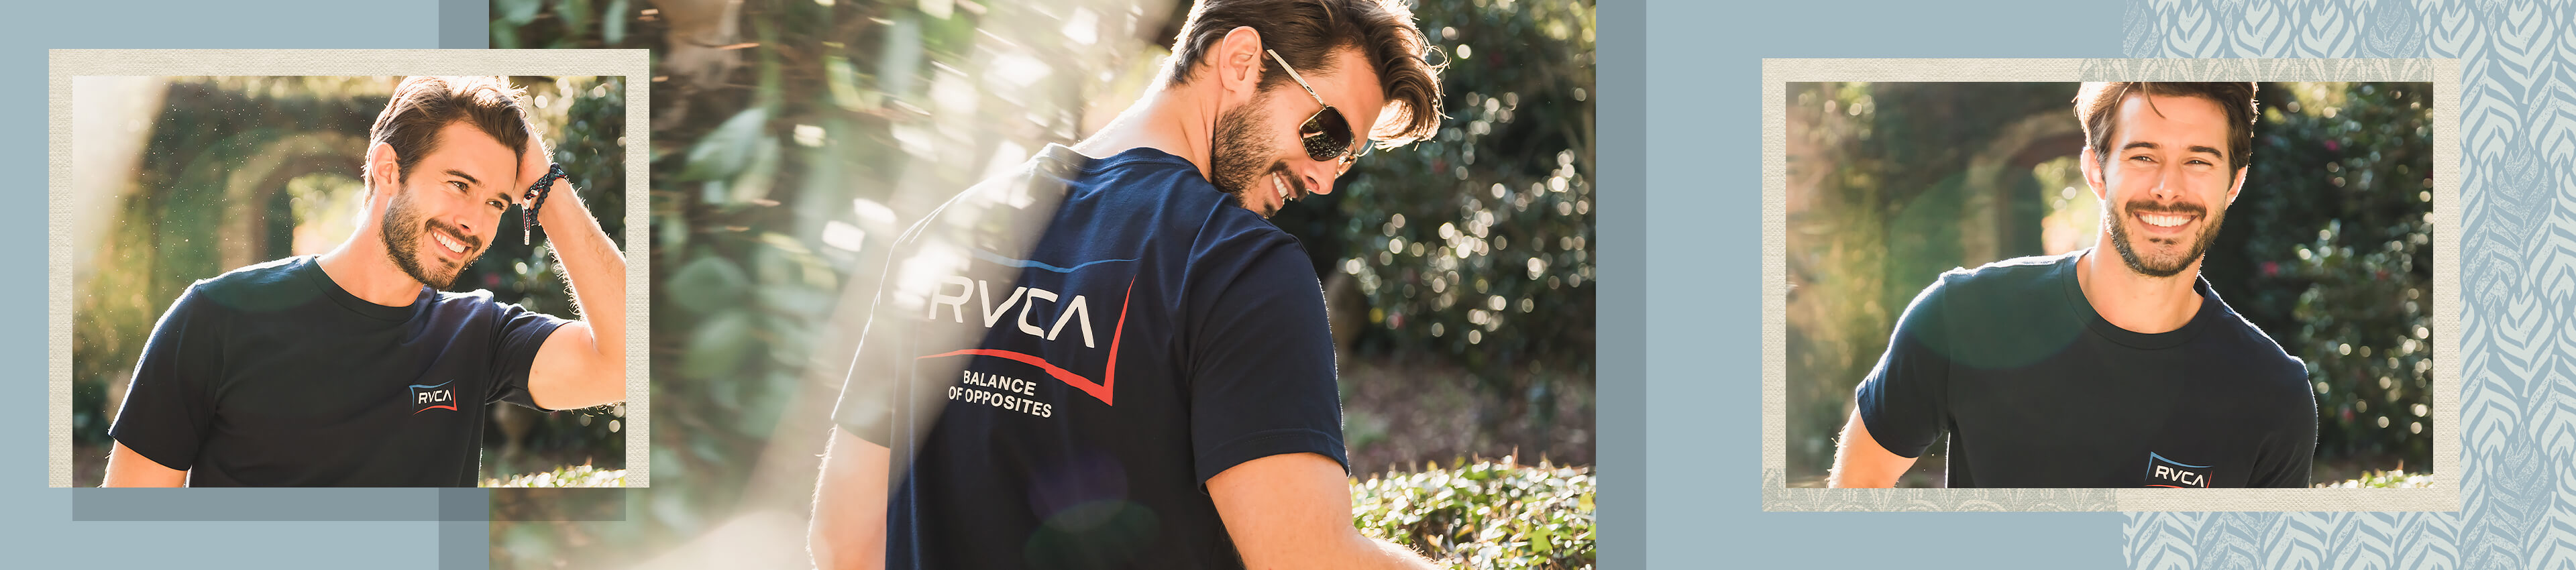 Guy wearing a blue RVCA graphic tee